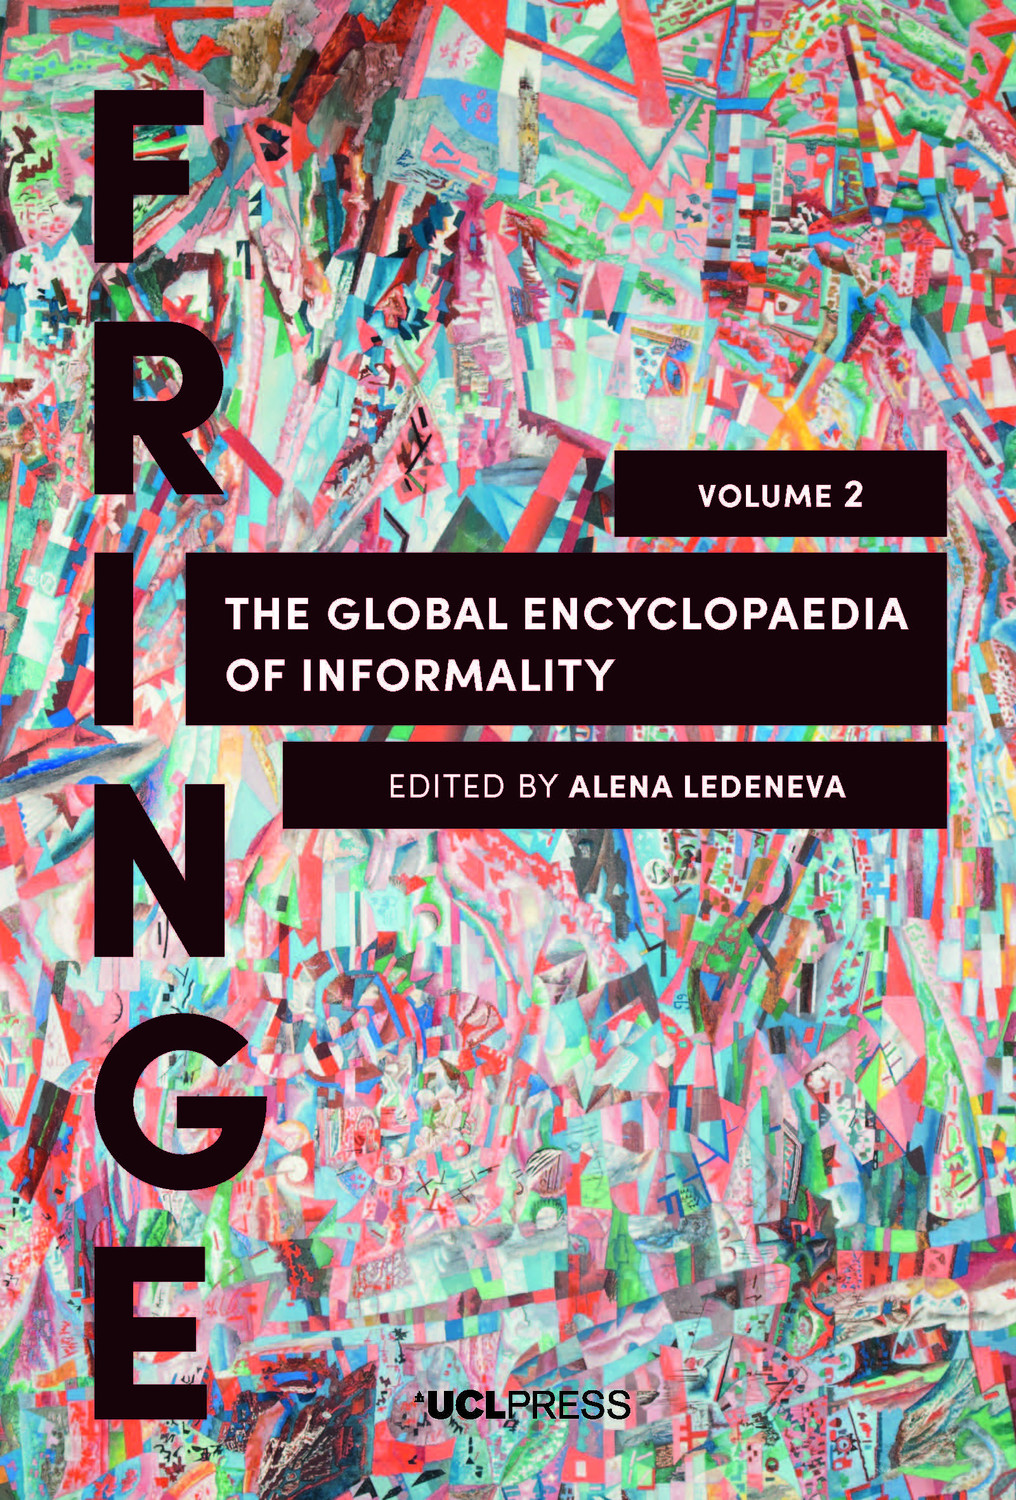 The Global Encyclopaedia of Informality, Volume 2